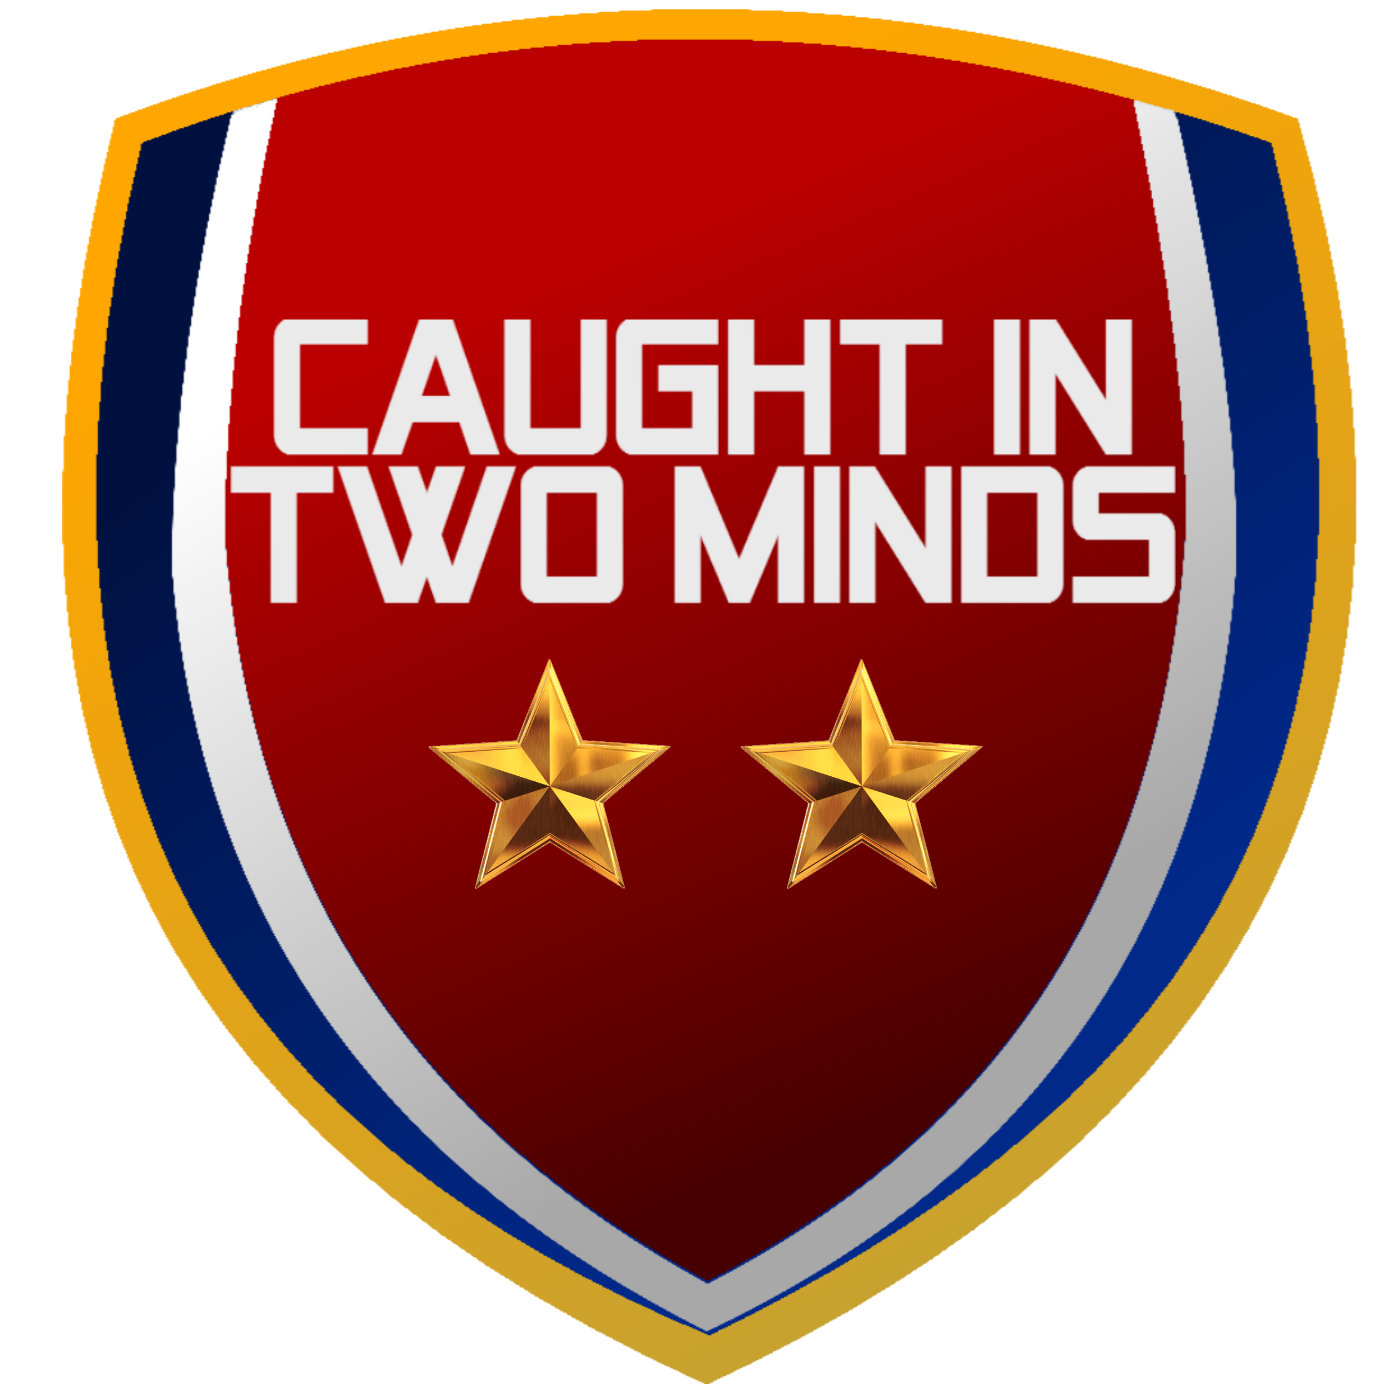 19 - Caught In Two Minds